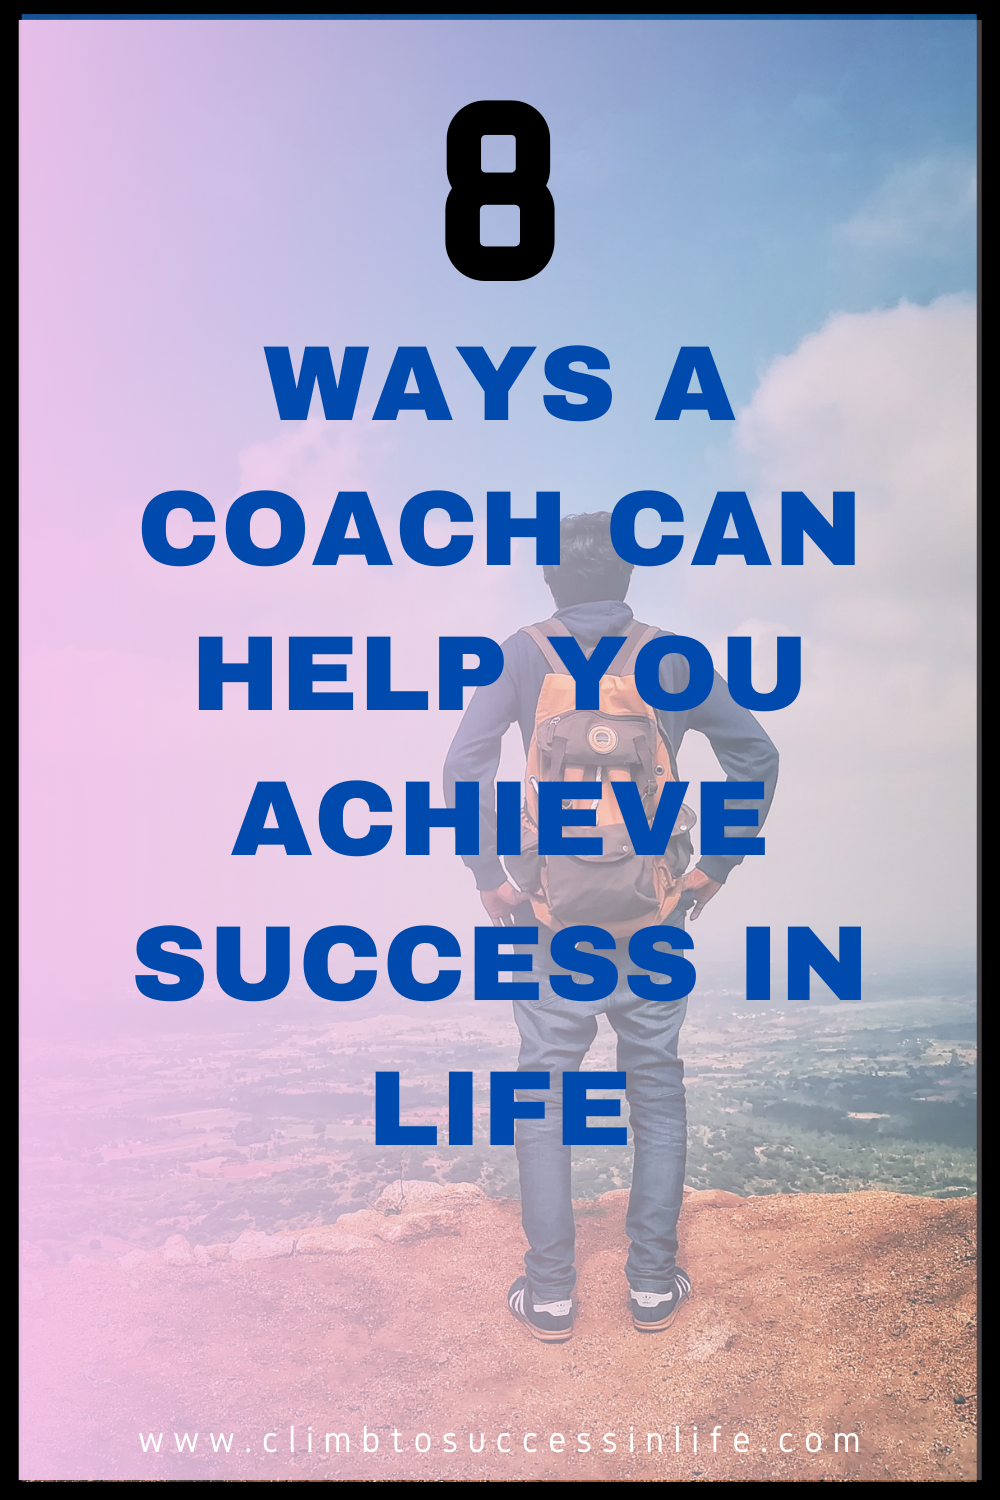 8 ways a coach can help you achieve success in life